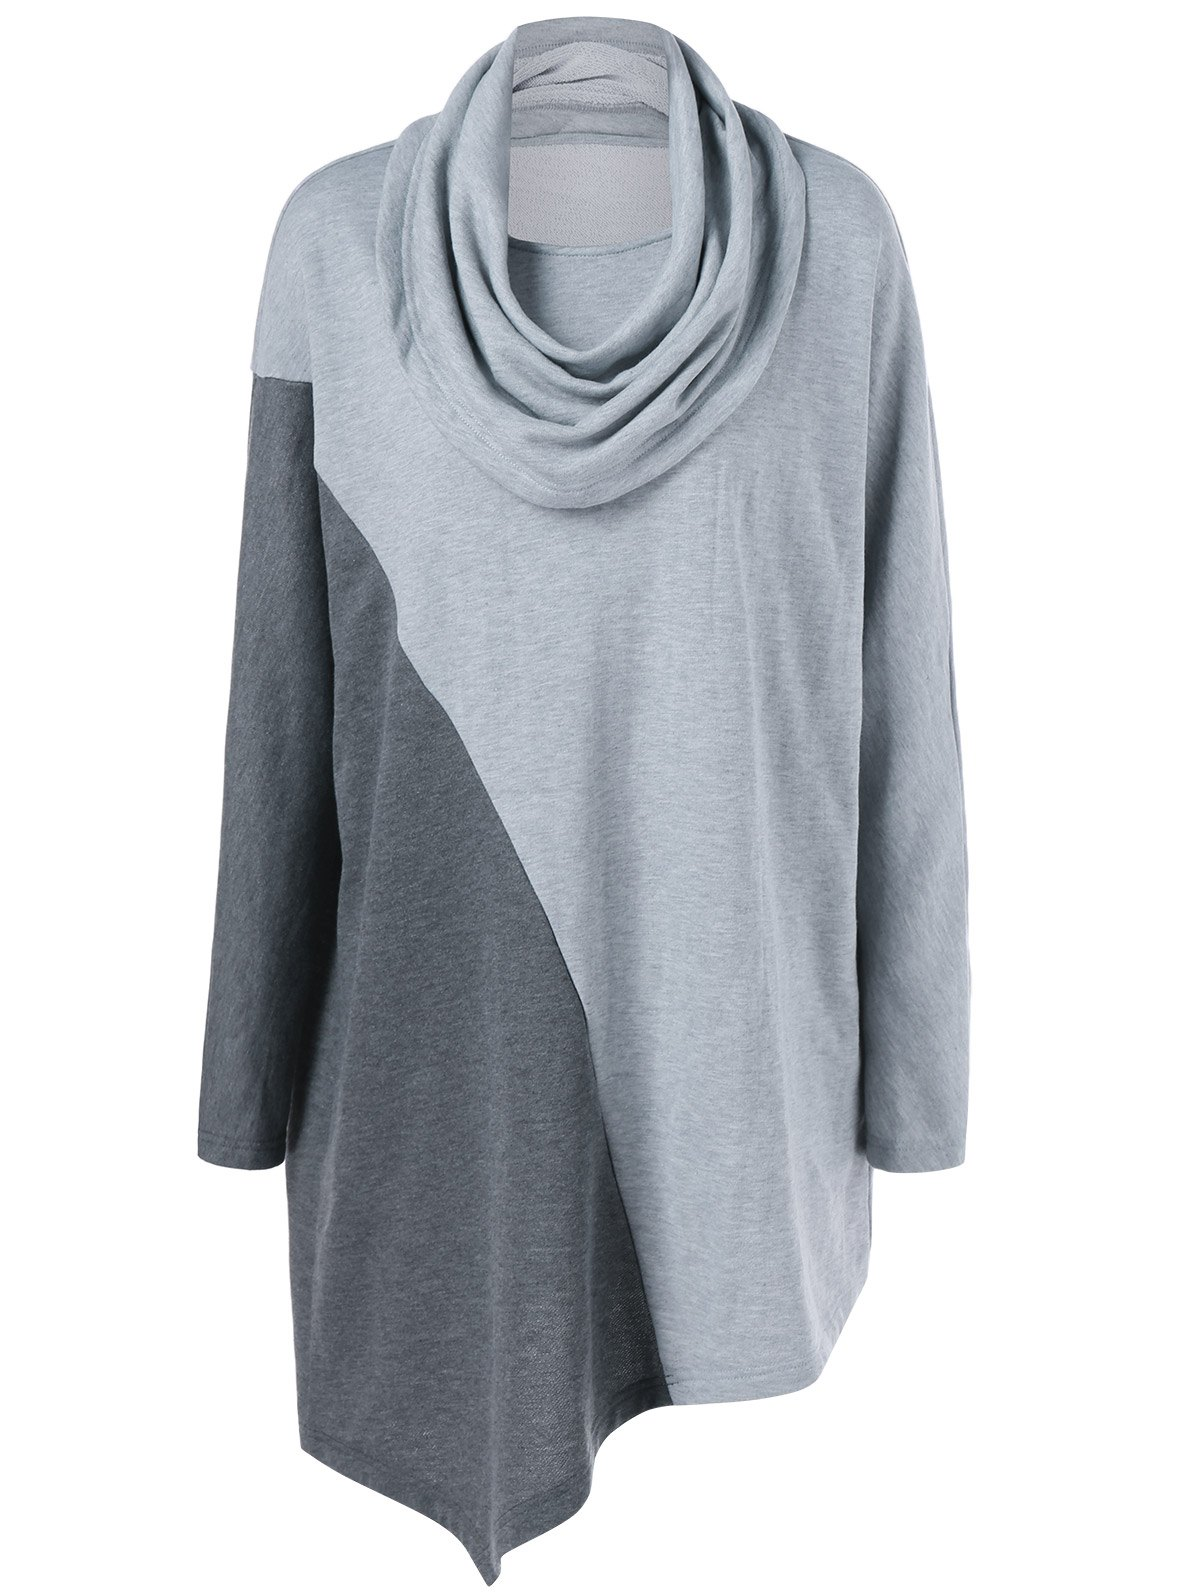 Plus Size Cowl Neck Asymmetrical Tee - GRAY 2XL